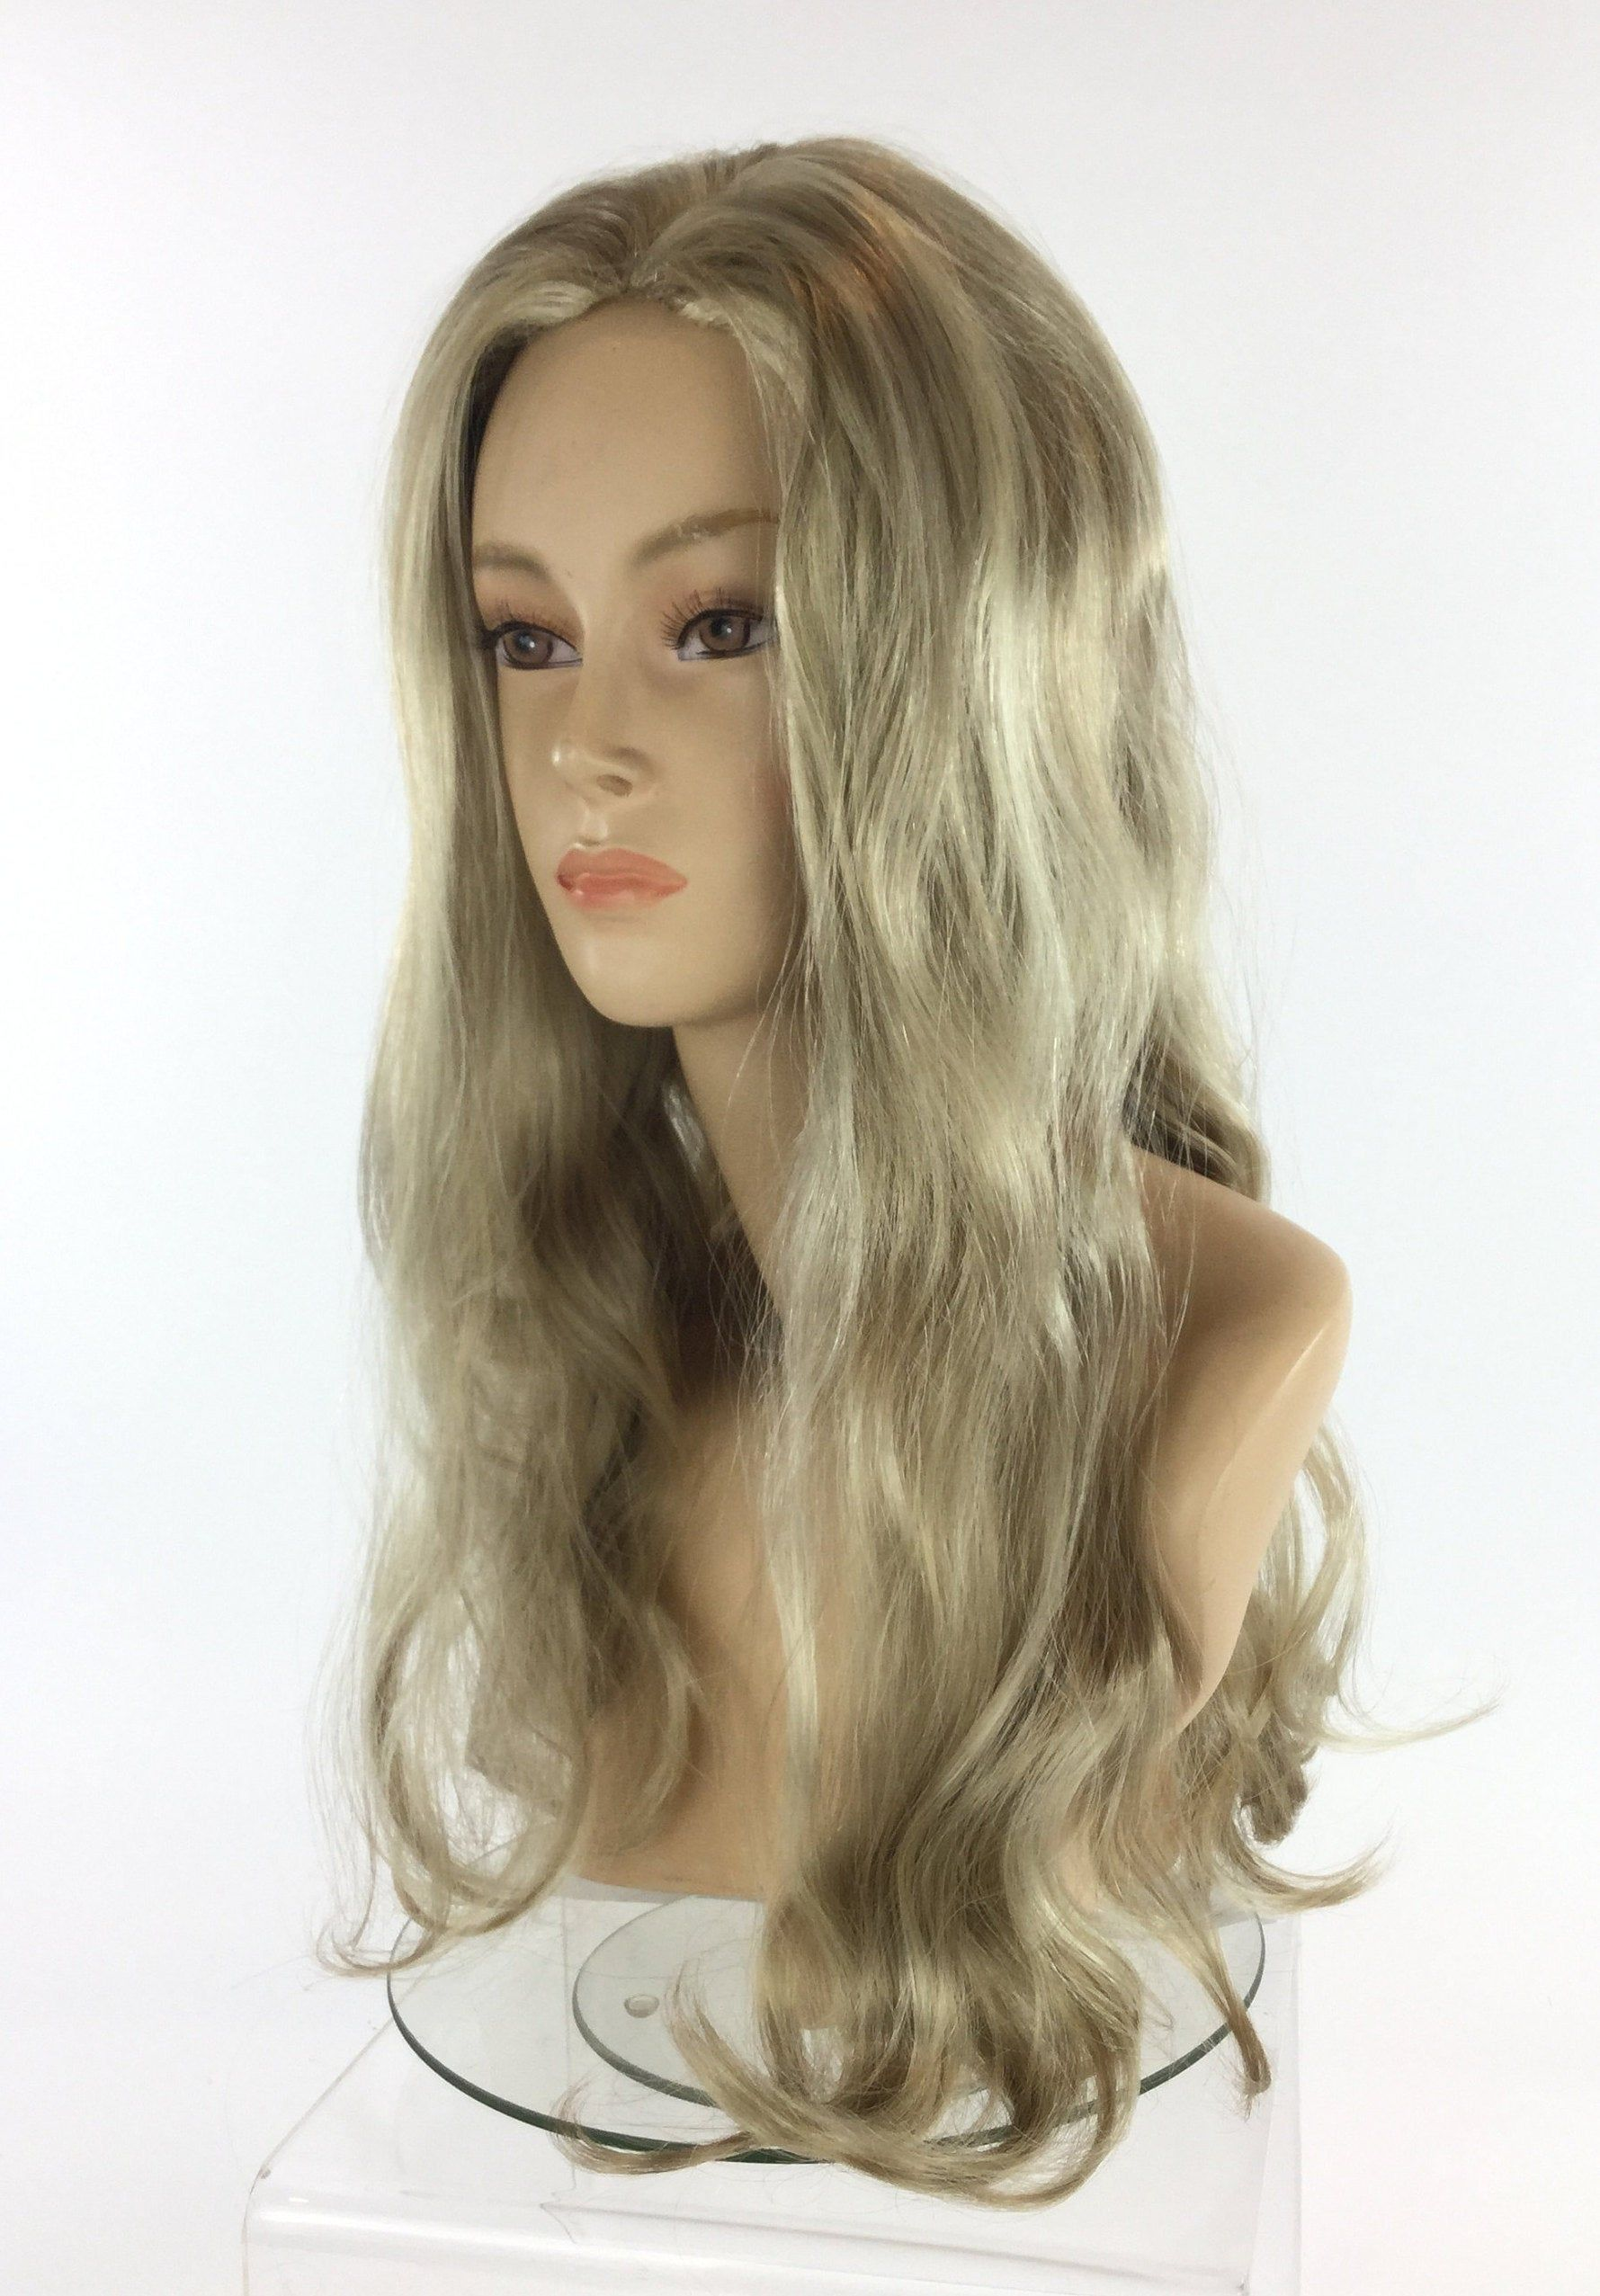 Tiger Lady Carol Premium Quality Theatrical Costume Wig By Etsy In 2020 Green Wig Frontal Hairstyles Grey Hair Color